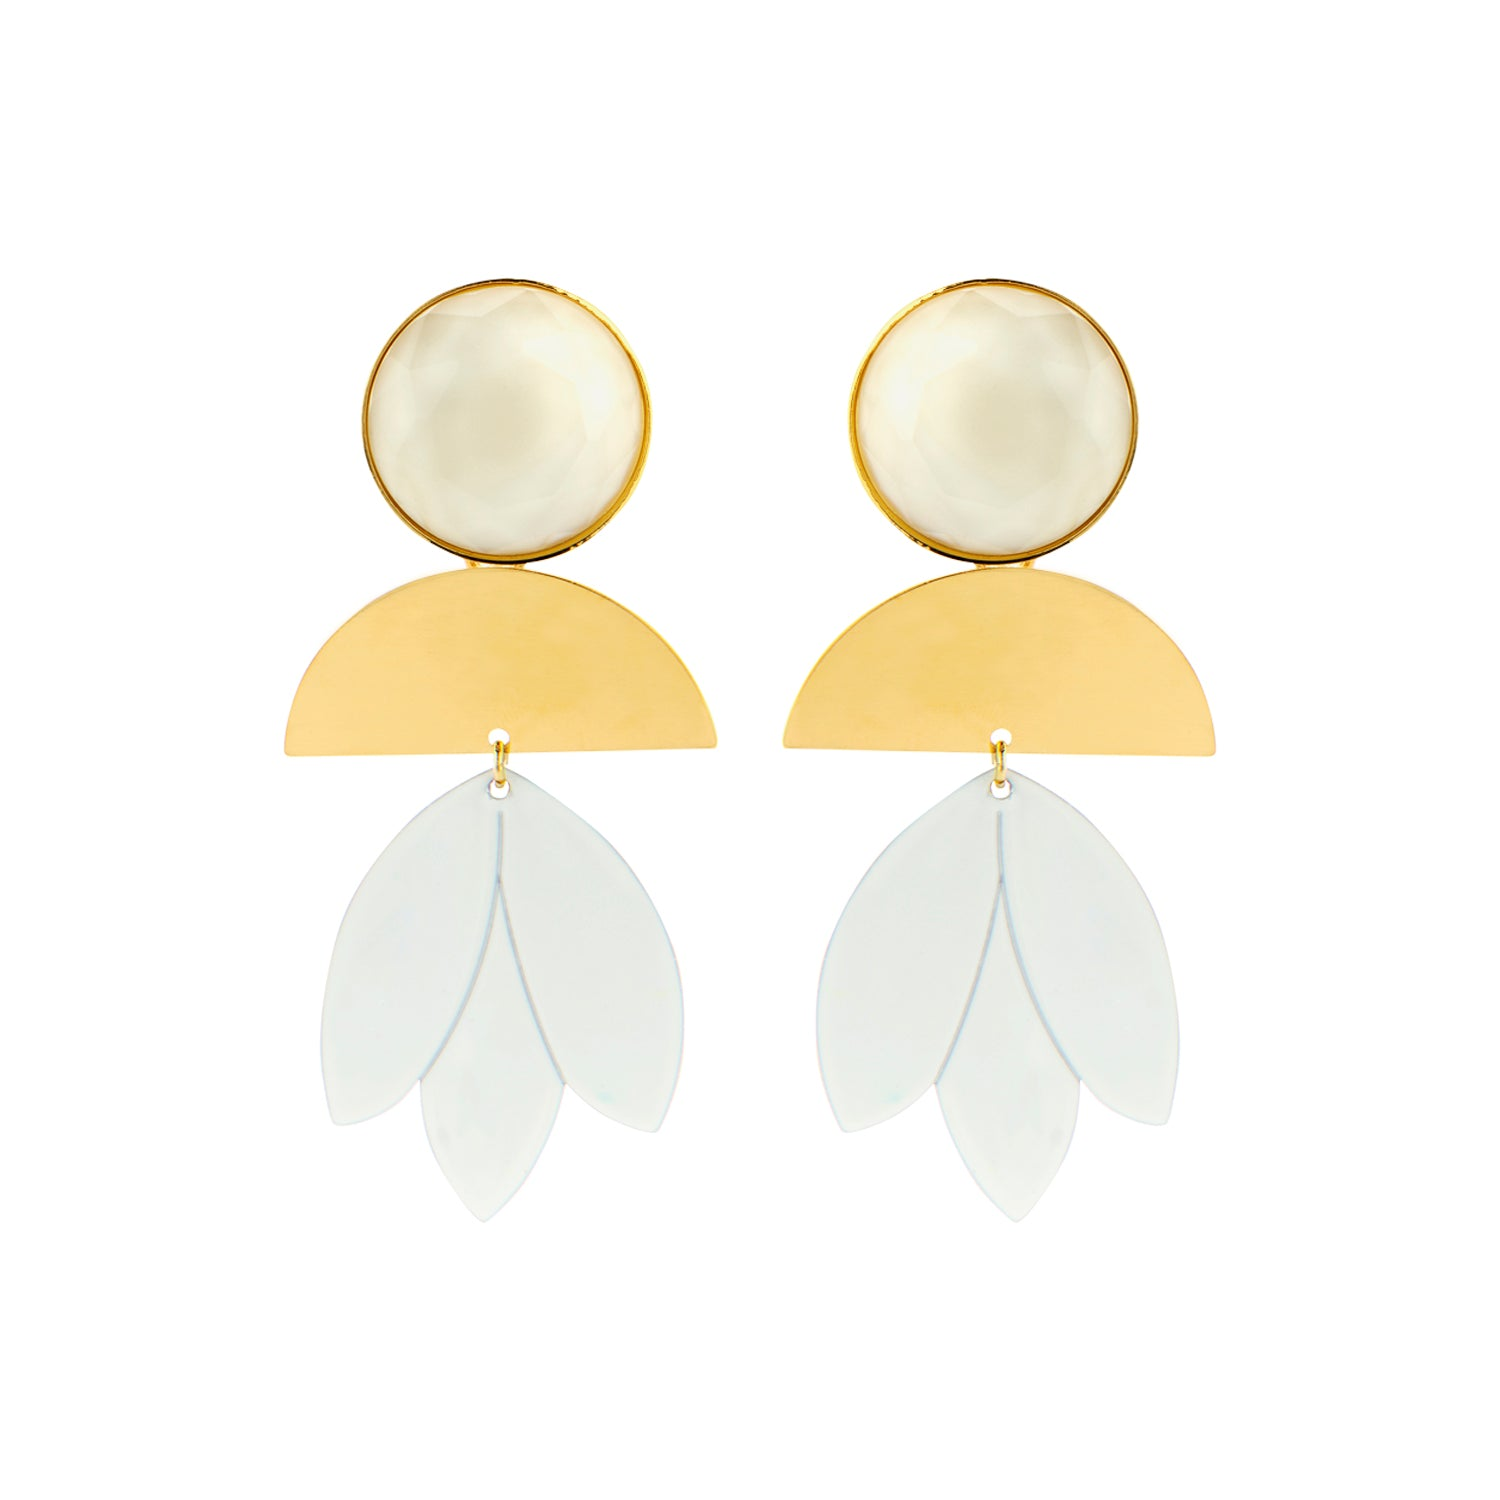 Pomme ecru statement earrings